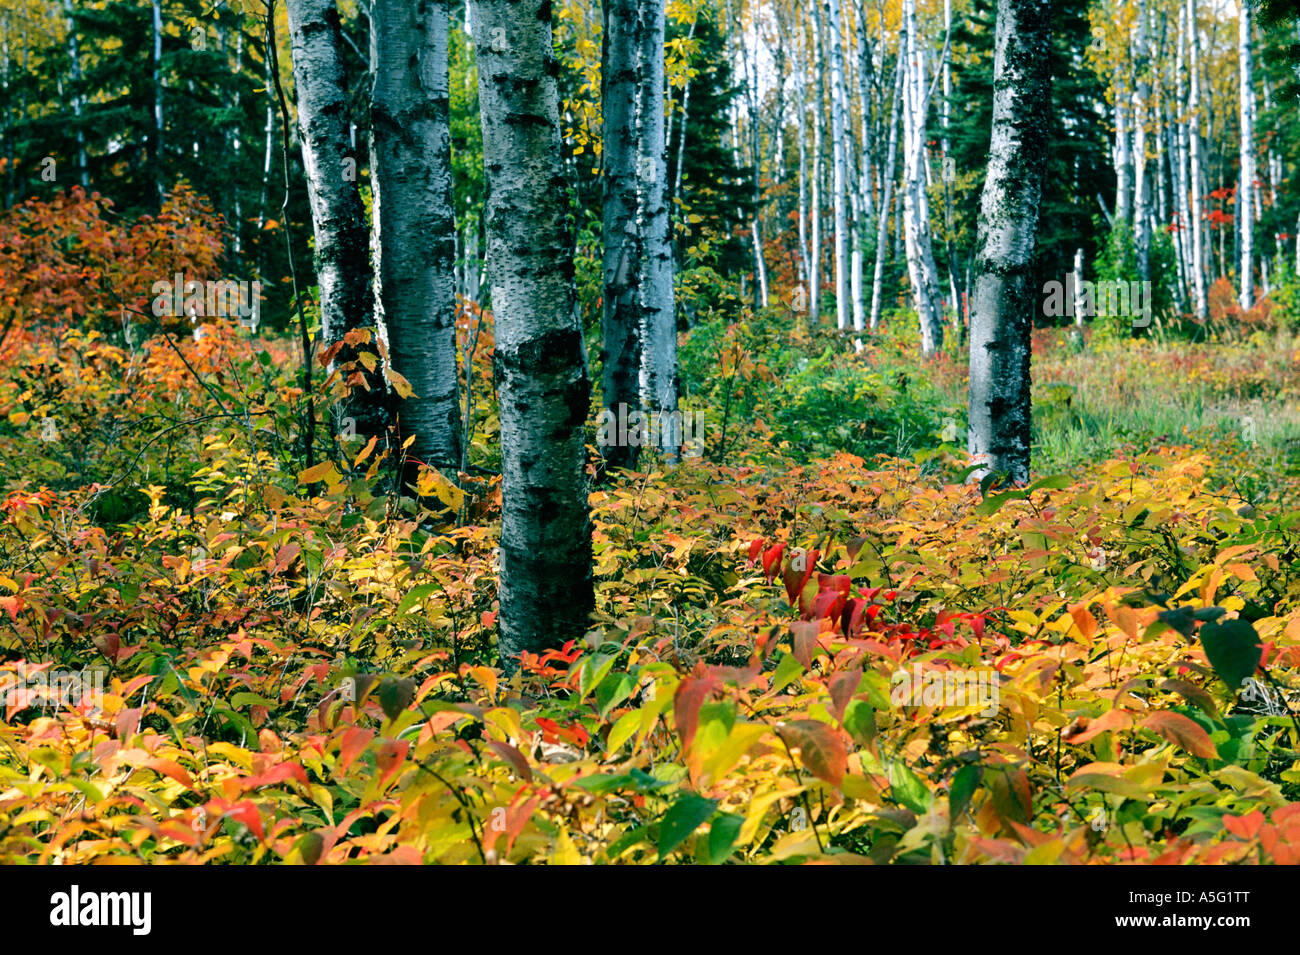 A stand of birch trees and brush in an explosion of fall color in ...